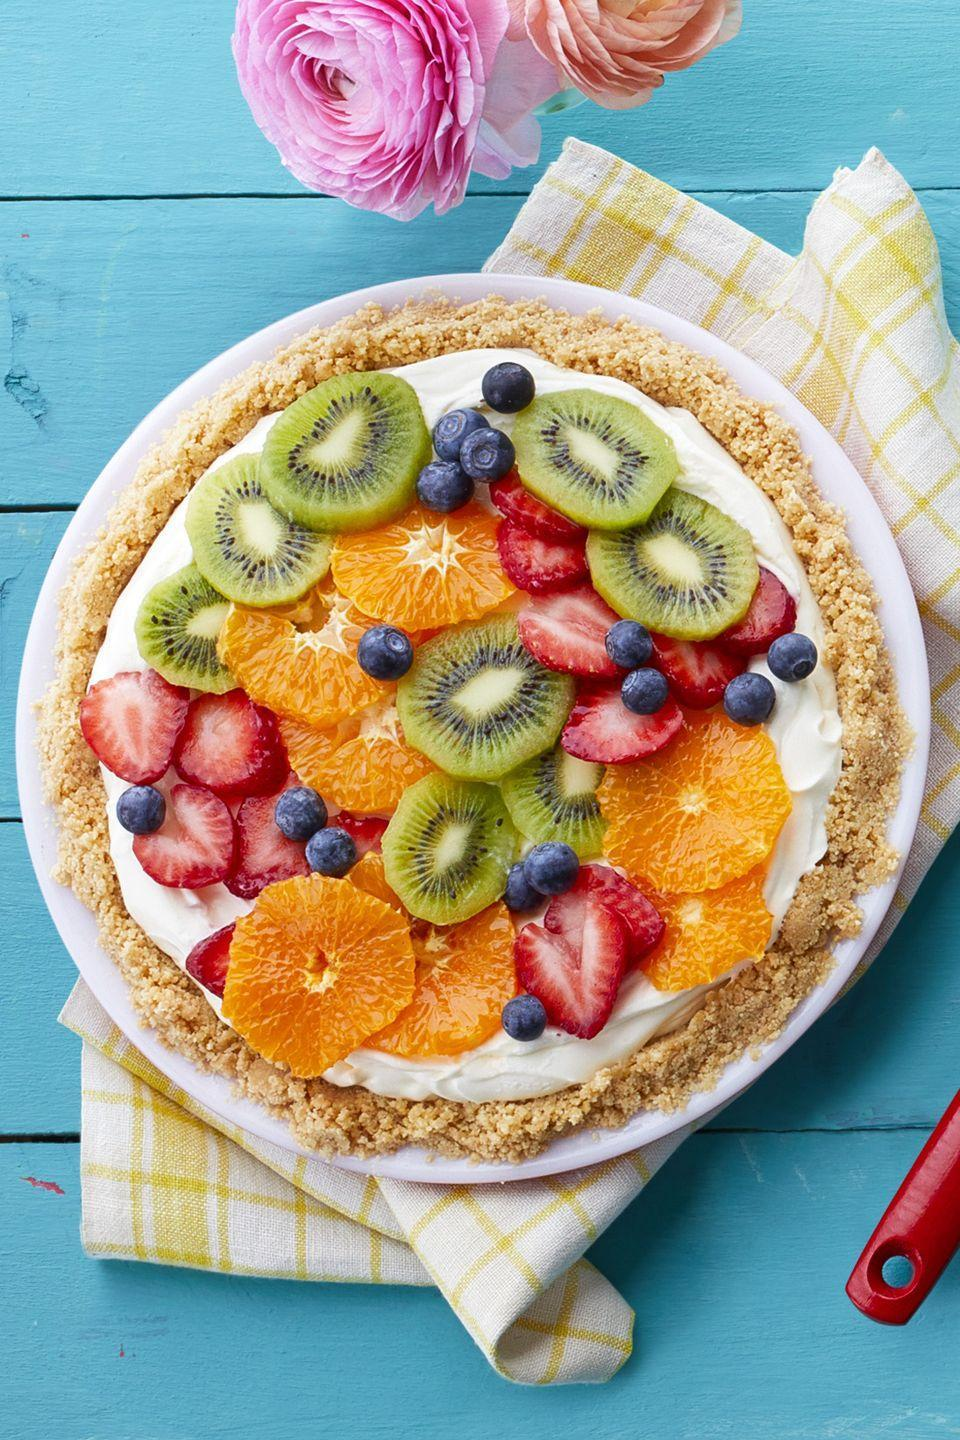 """<p>This recipe calls for clementines, blueberries, kiwi, and strawberries, but feel free to add your favorite in-season fruits to this no-bake cheesecake recipe.</p><p><u><em><strong><a href=""""https://www.womansday.com/food-recipes/food-drinks/recipes/a58994/fresh-fruit-cheesecake-pie/"""" rel=""""nofollow noopener"""" target=""""_blank"""" data-ylk=""""slk:Get the recipe for Fresh Fruit Cheesecake Pie"""" class=""""link rapid-noclick-resp"""">Get the recipe for Fresh Fruit Cheesecake Pie</a>.</strong></em></u></p>"""